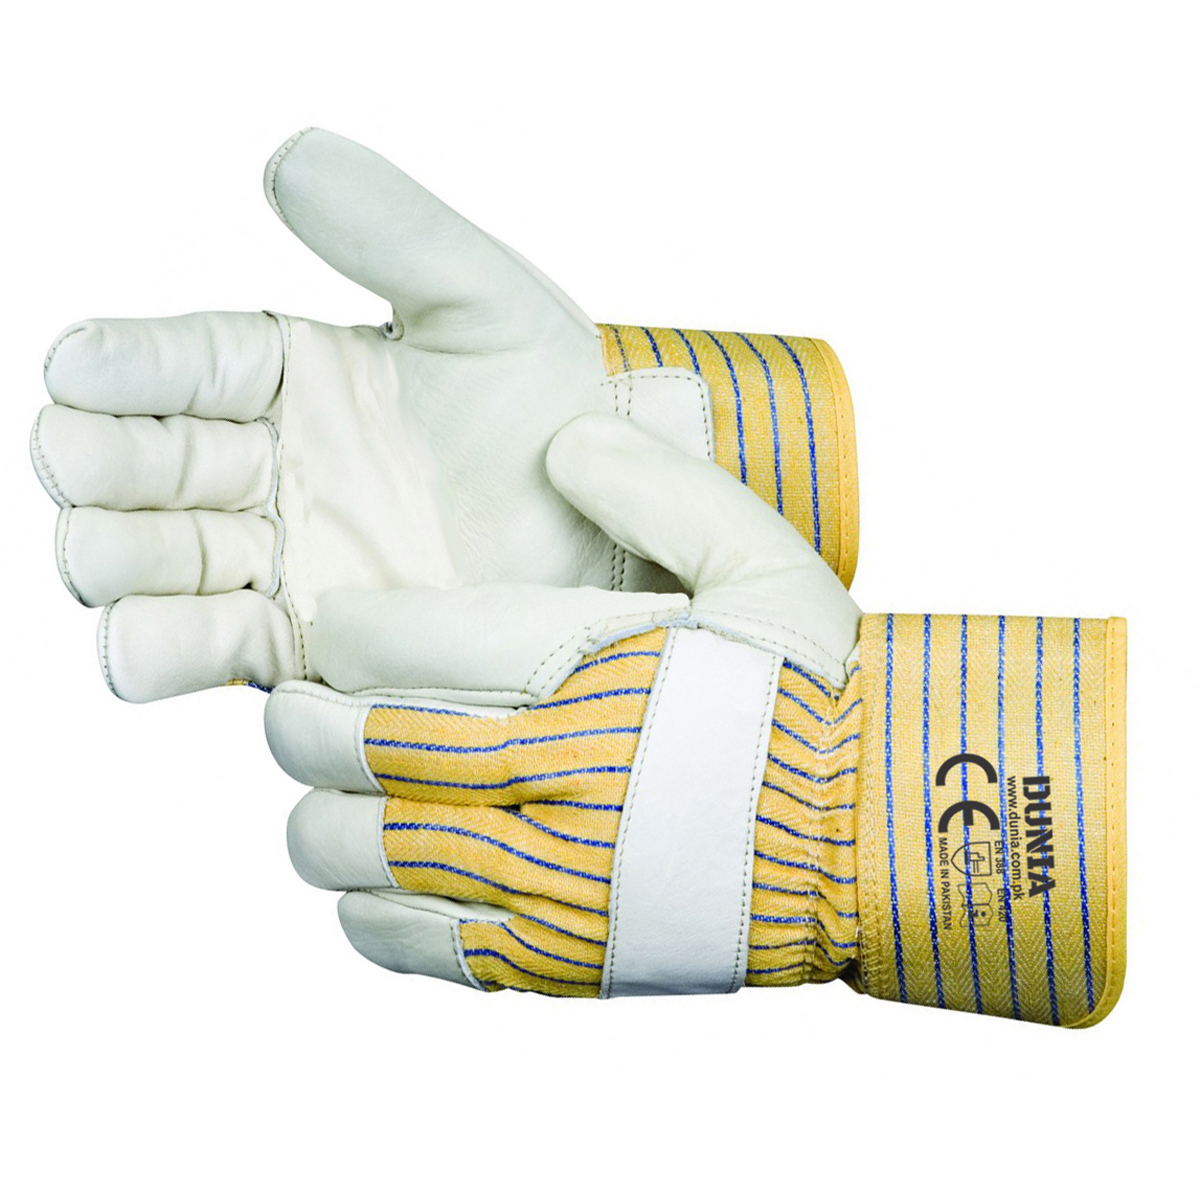 DTC-437 Leather Work Gloves